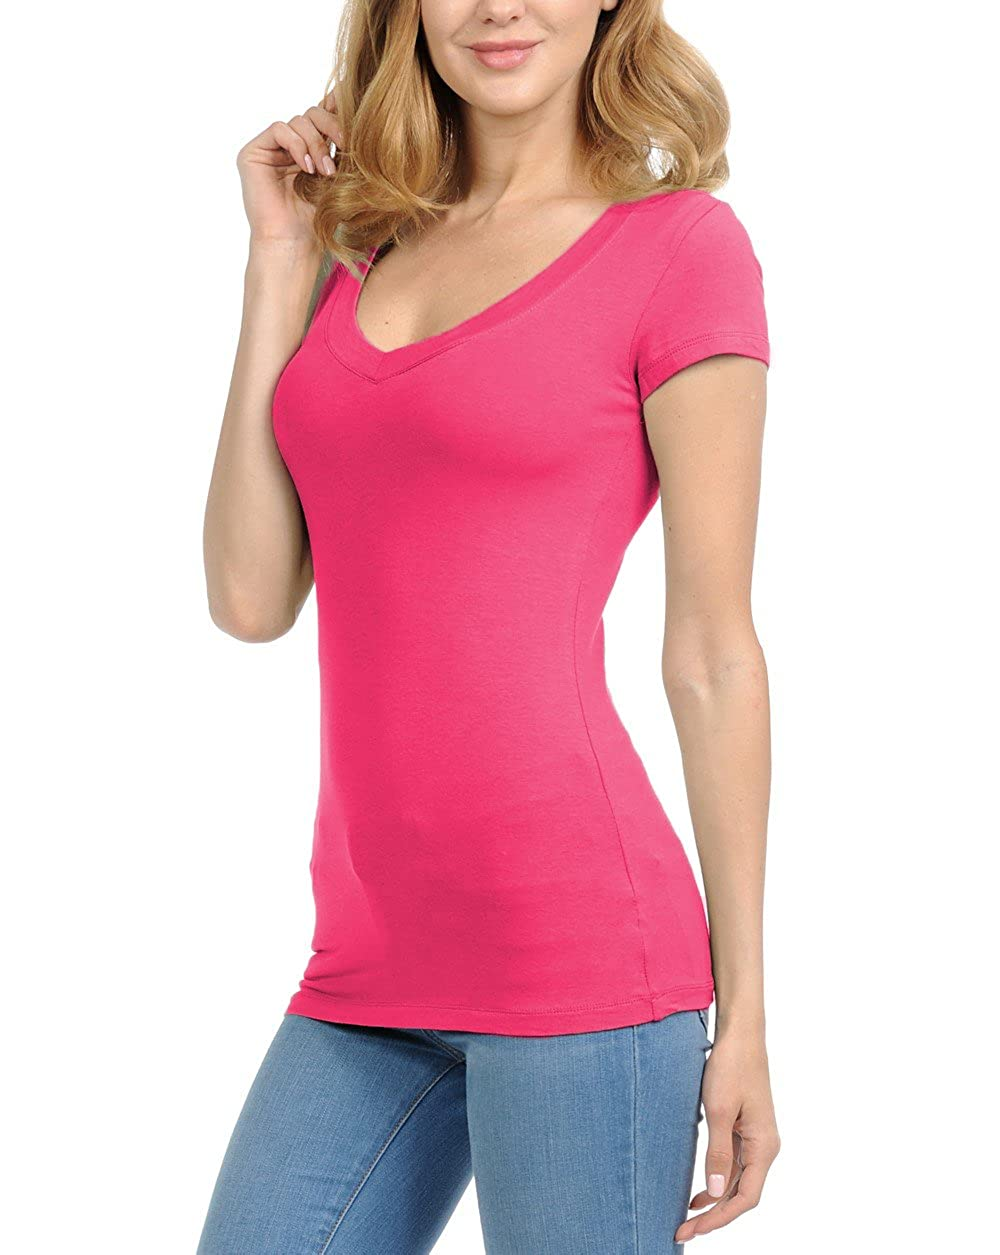 392a681c Women T-Shirts with Short Sleeves Casual Top Junior and Women Round Crew  Neck and Deep V-Neck with Short Sleeves T-Shirts.